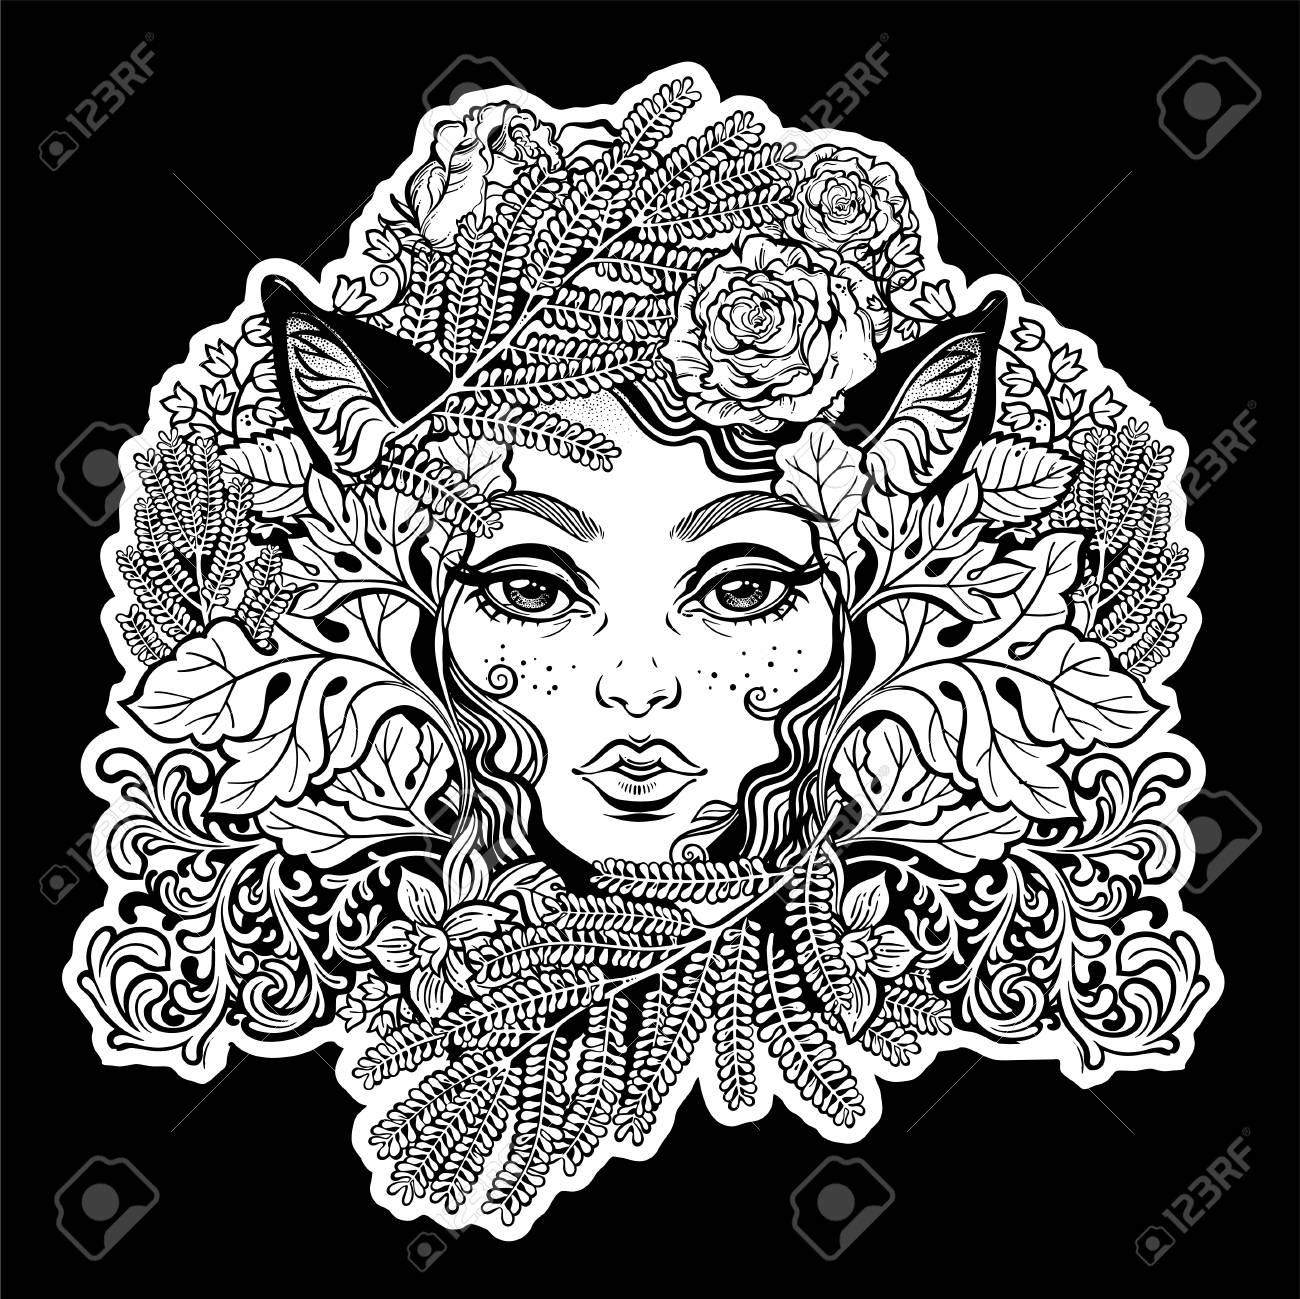 Celtic Fairy Elf. Shaman Woman With Animal Ears Of Ferns, Leaves ...